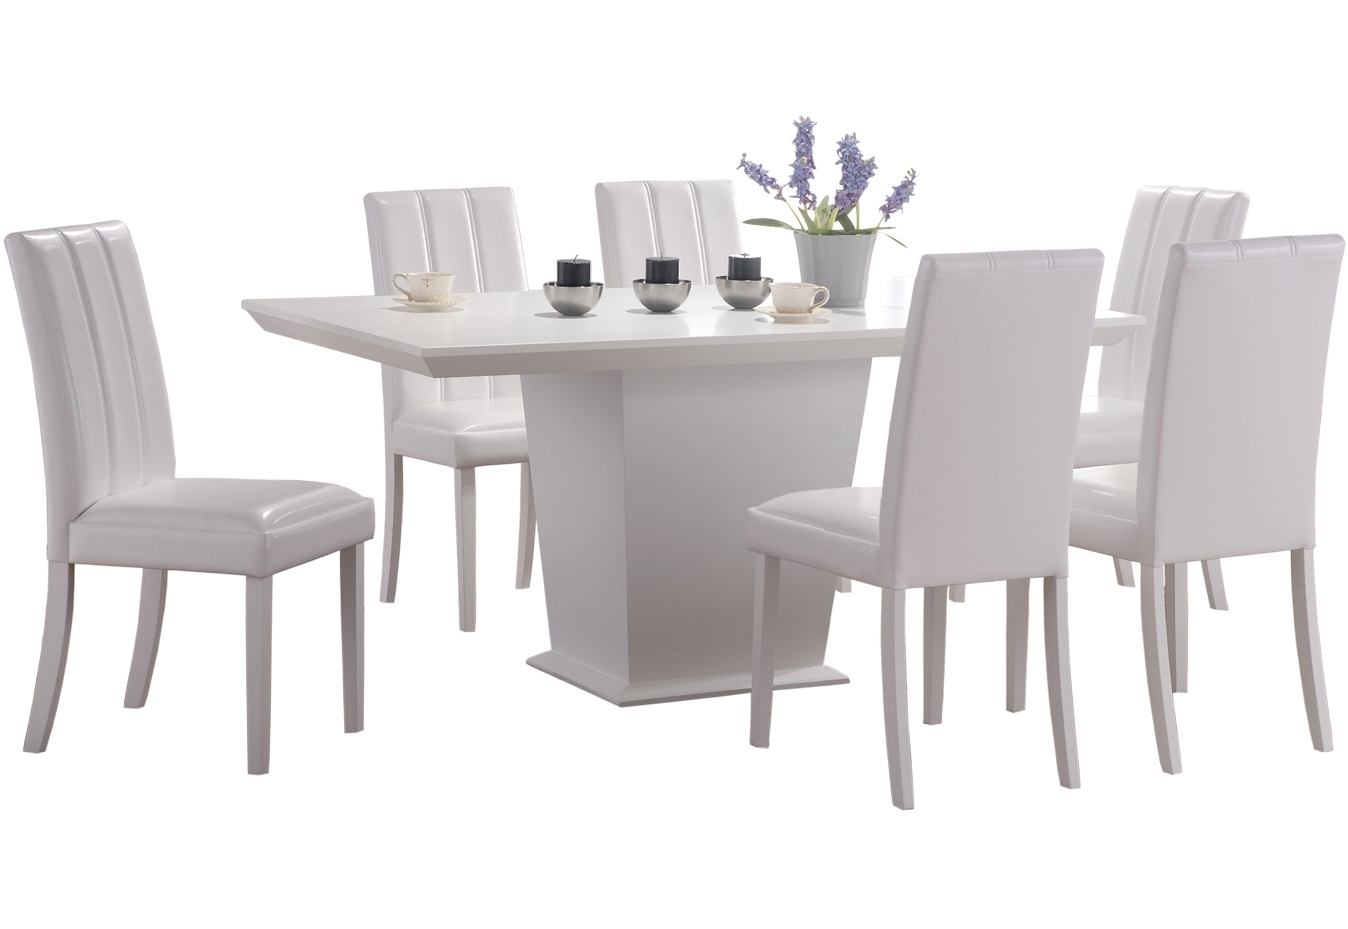 Most Up To Date Interesting White Dining Room Tables Pictures Design Ideas Chair Intended For White Dining Tables And 6 Chairs (View 5 of 25)